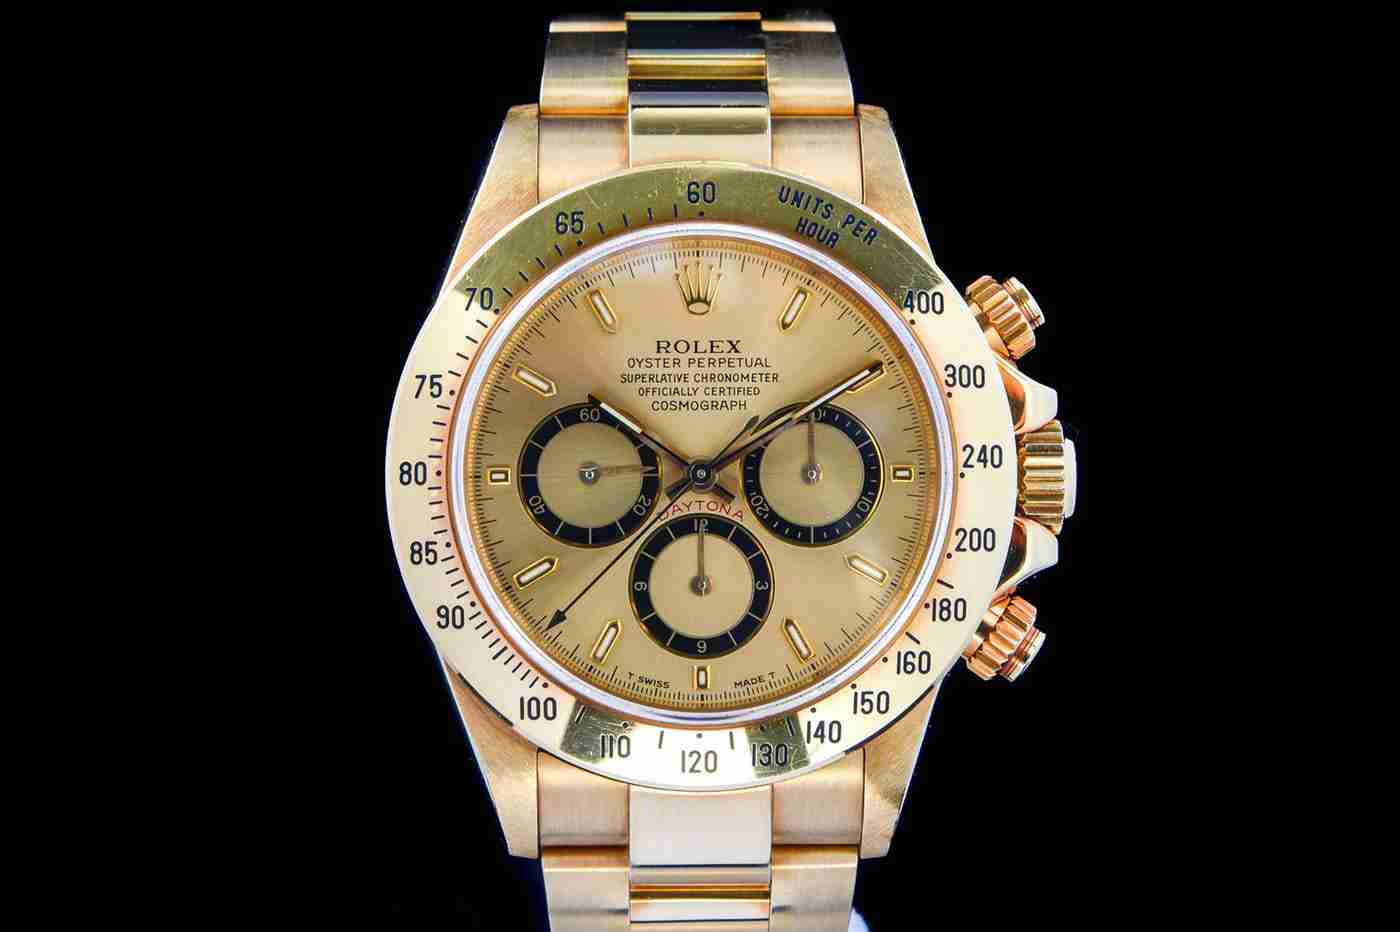 top three recommend for 2018 fall a rolex daytona an. Black Bedroom Furniture Sets. Home Design Ideas